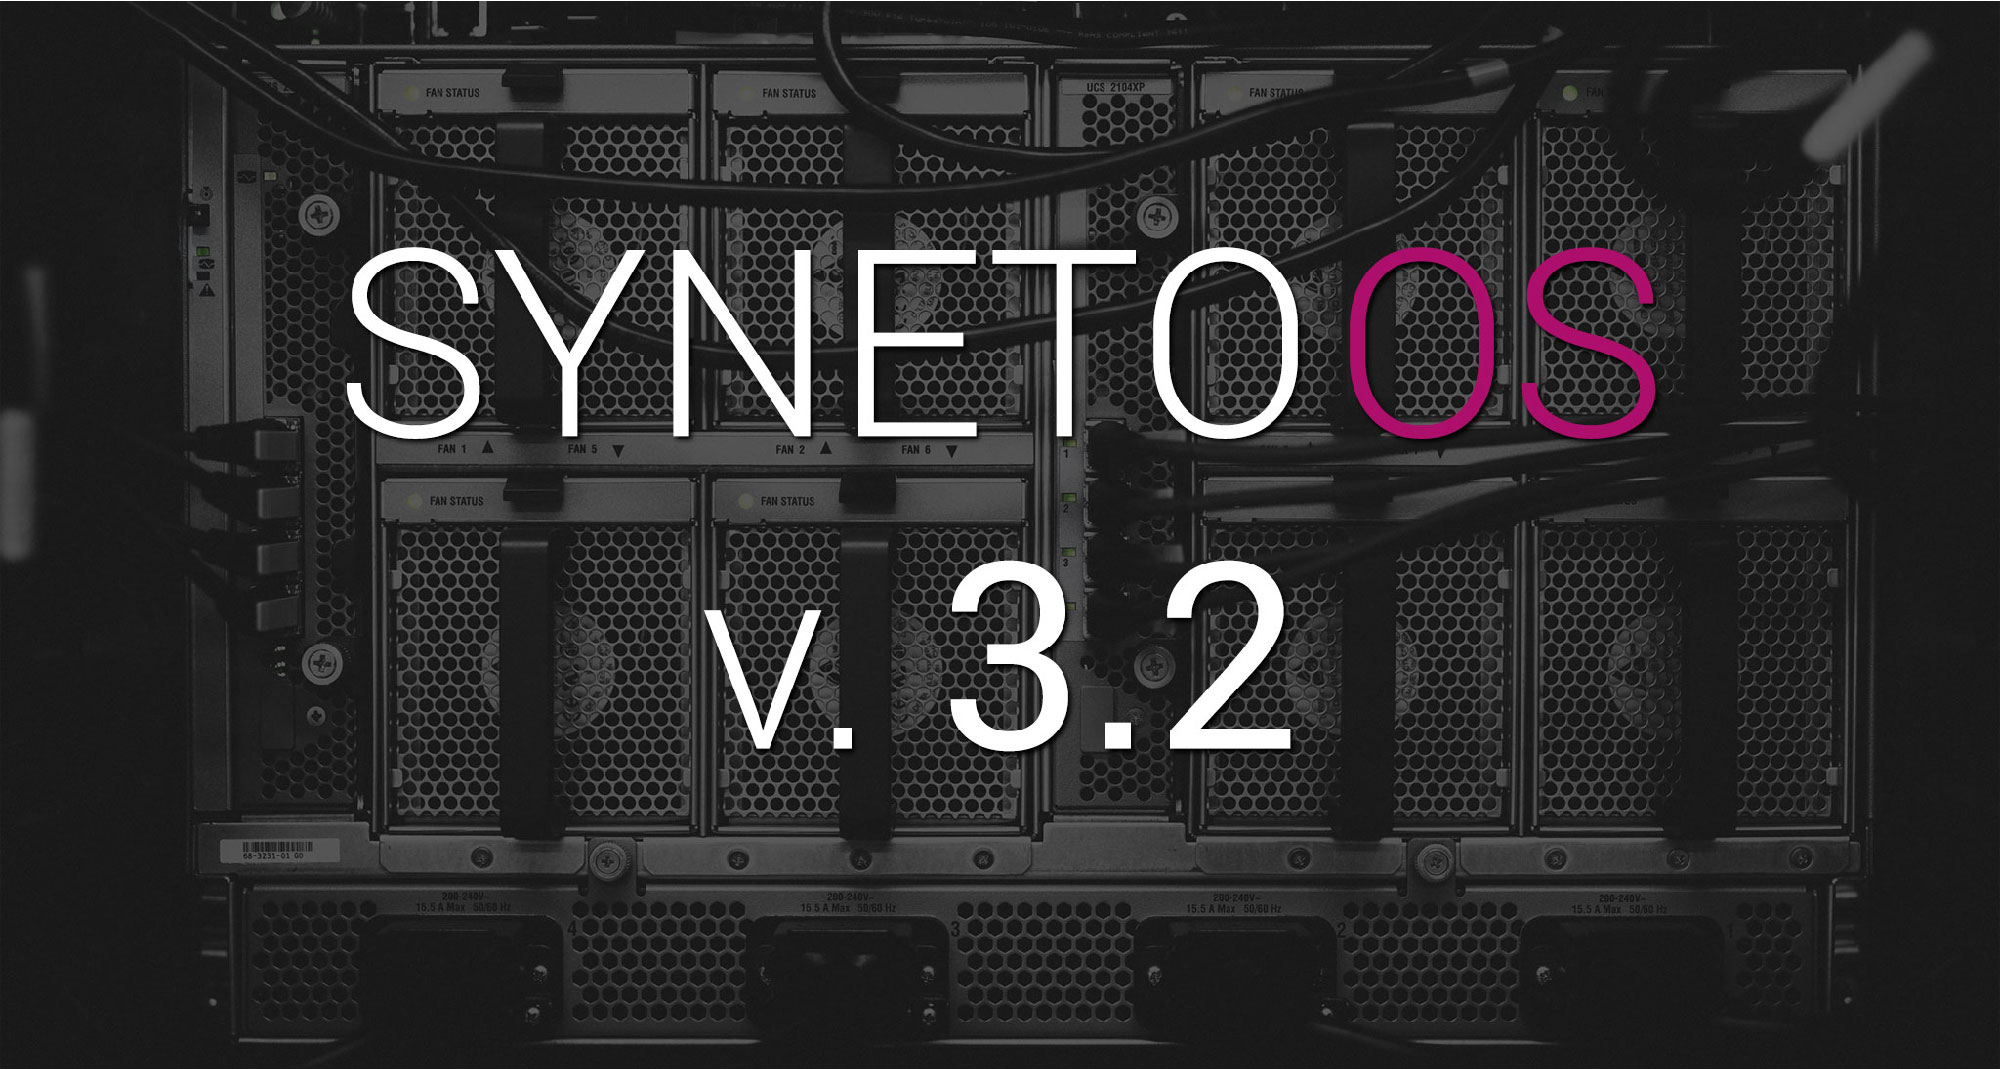 syneto-os-disaster-recovery